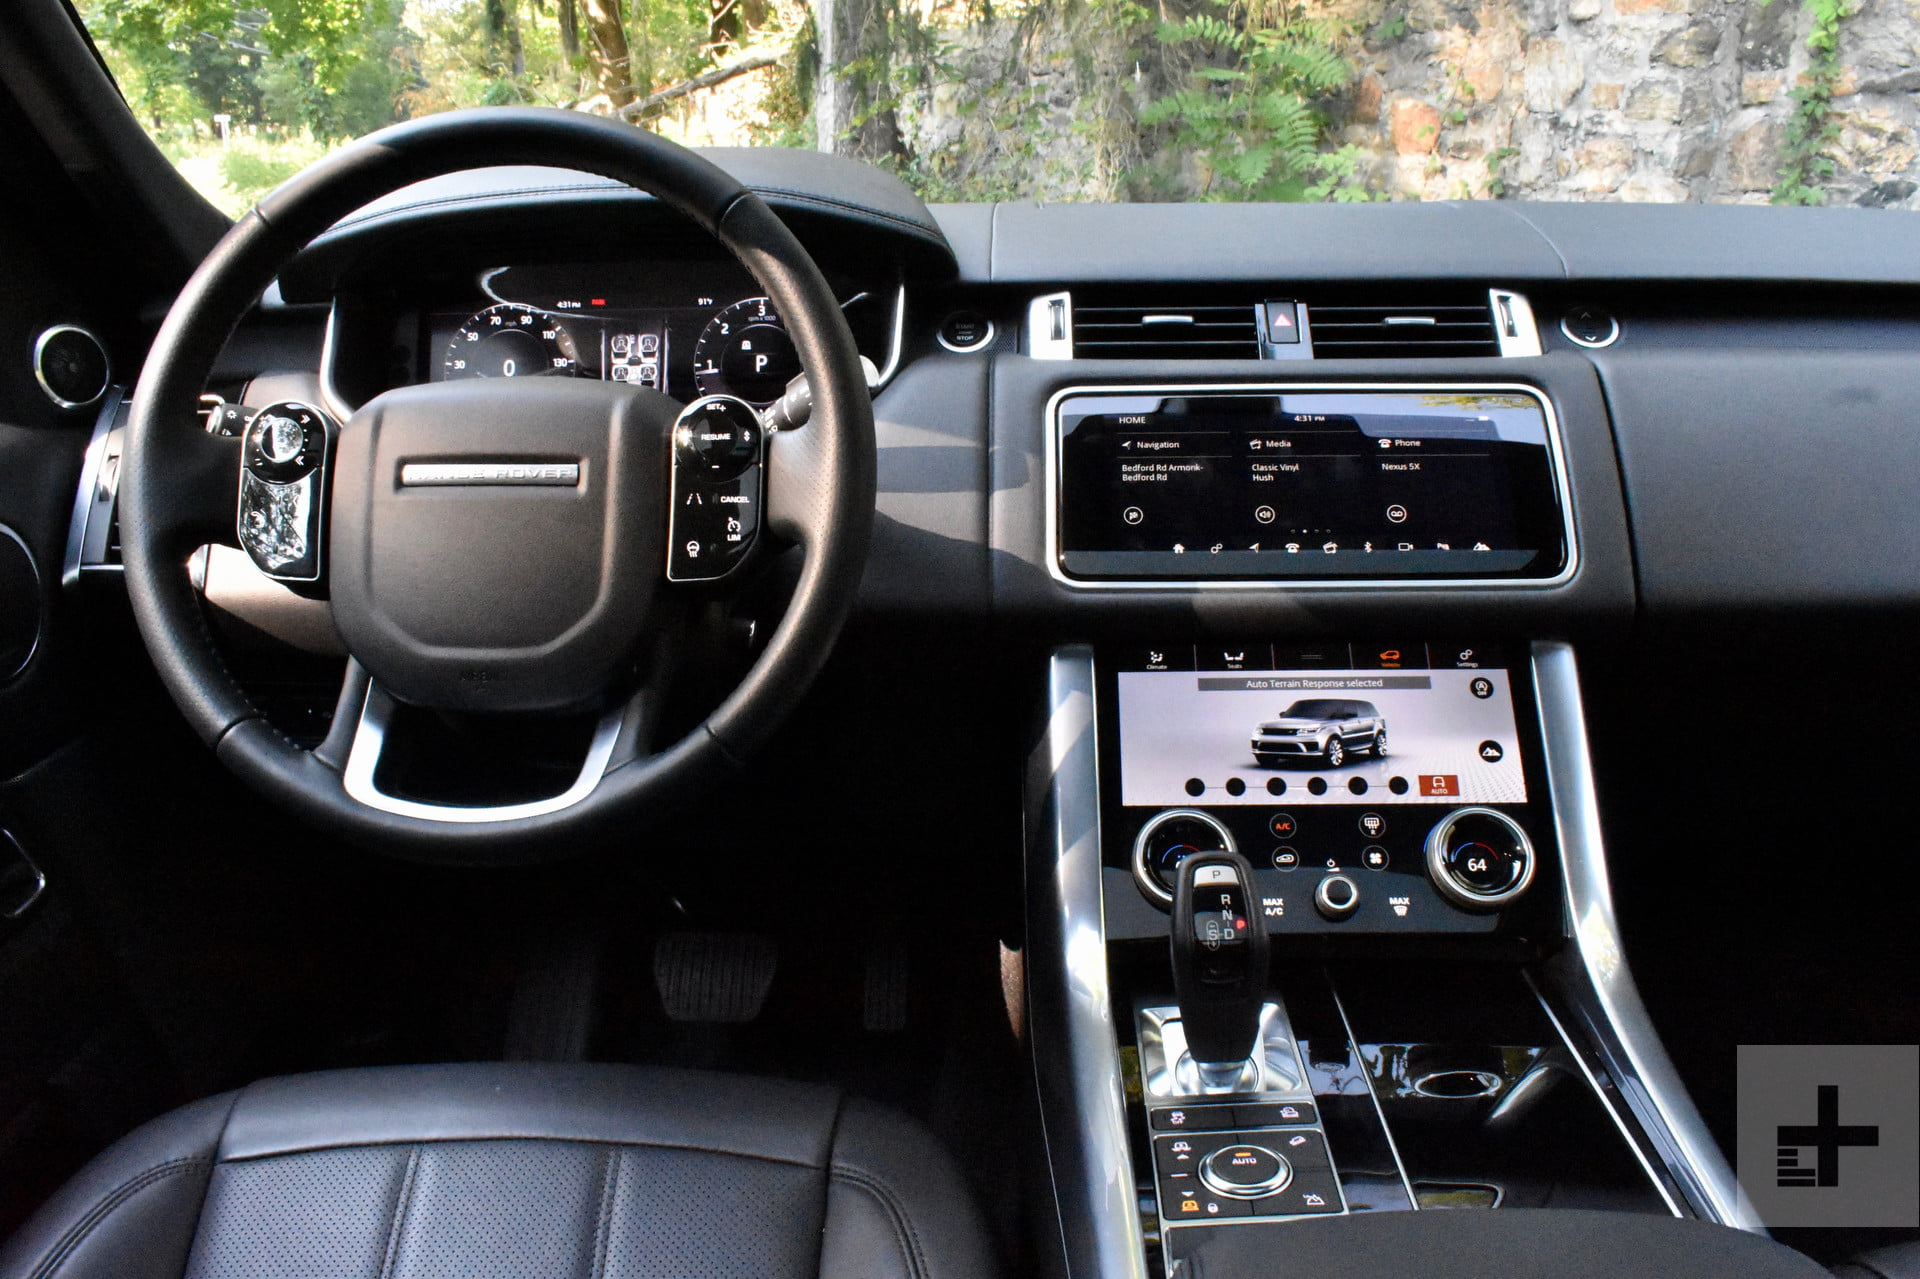 2018 Land Rover Range Rover Sport HSE Td6 Review